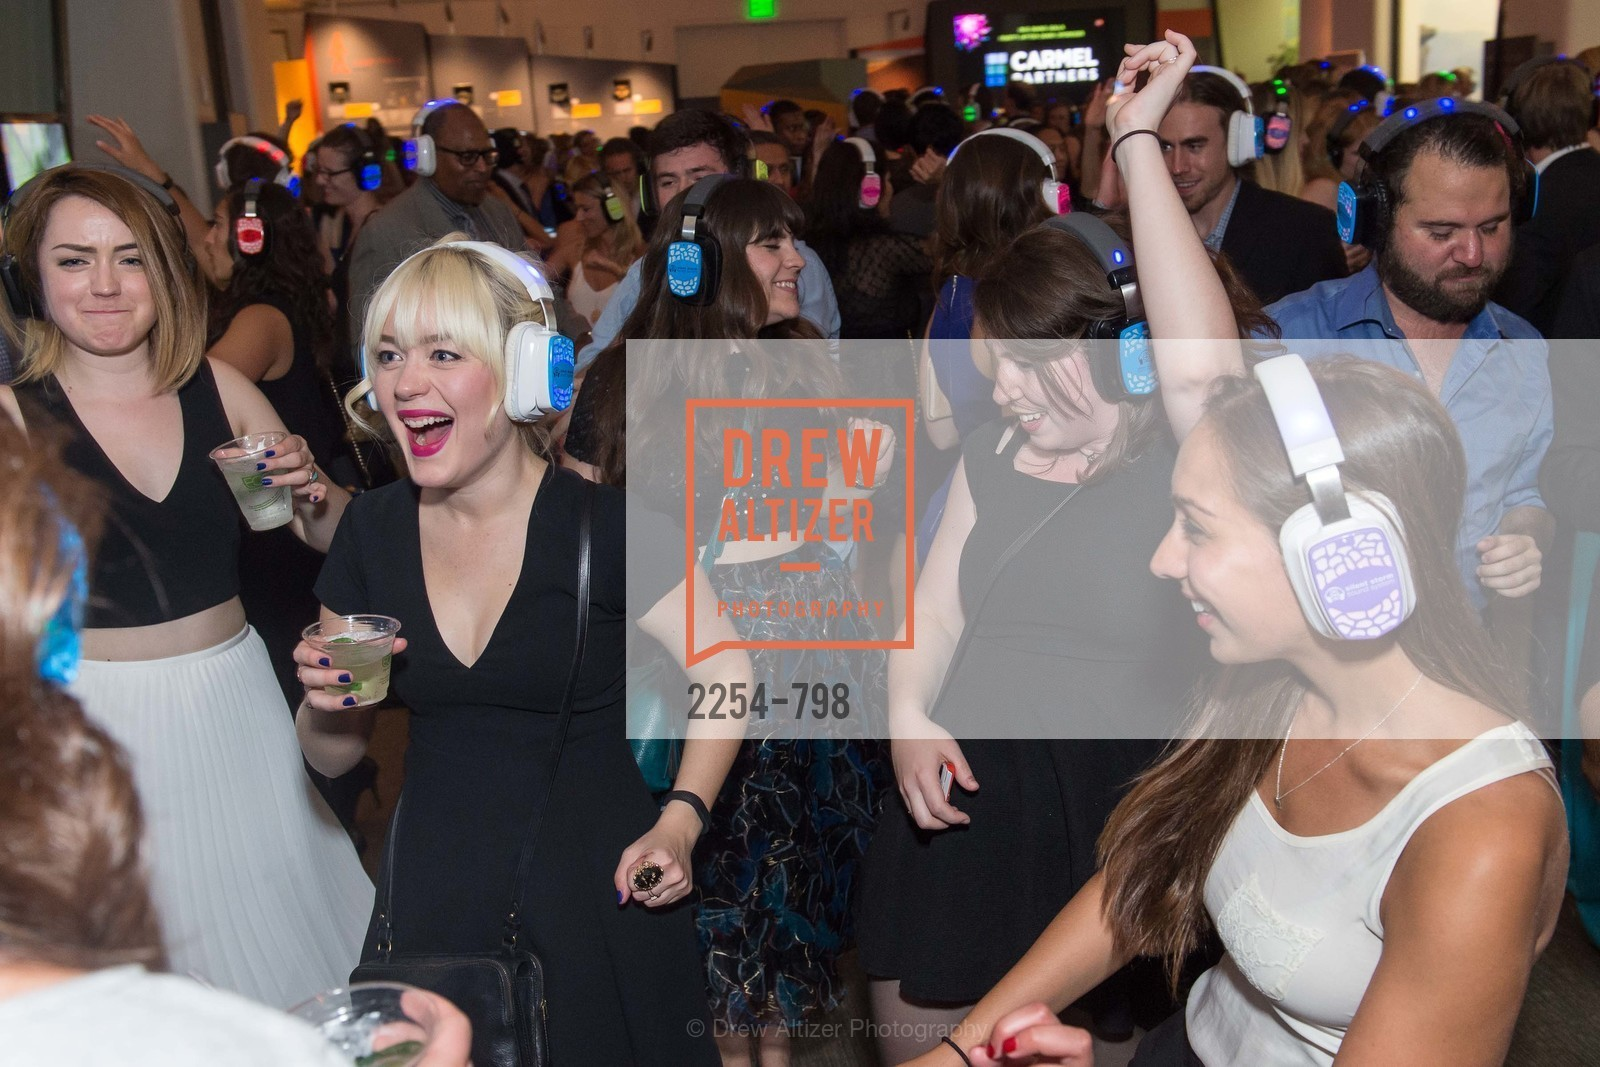 Dance Floor, CALIFORNIA ACADEMY OF SCIENCES - Big Bang Gala 2015, US, April 24th, 2015,Drew Altizer, Drew Altizer Photography, full-service agency, private events, San Francisco photographer, photographer california